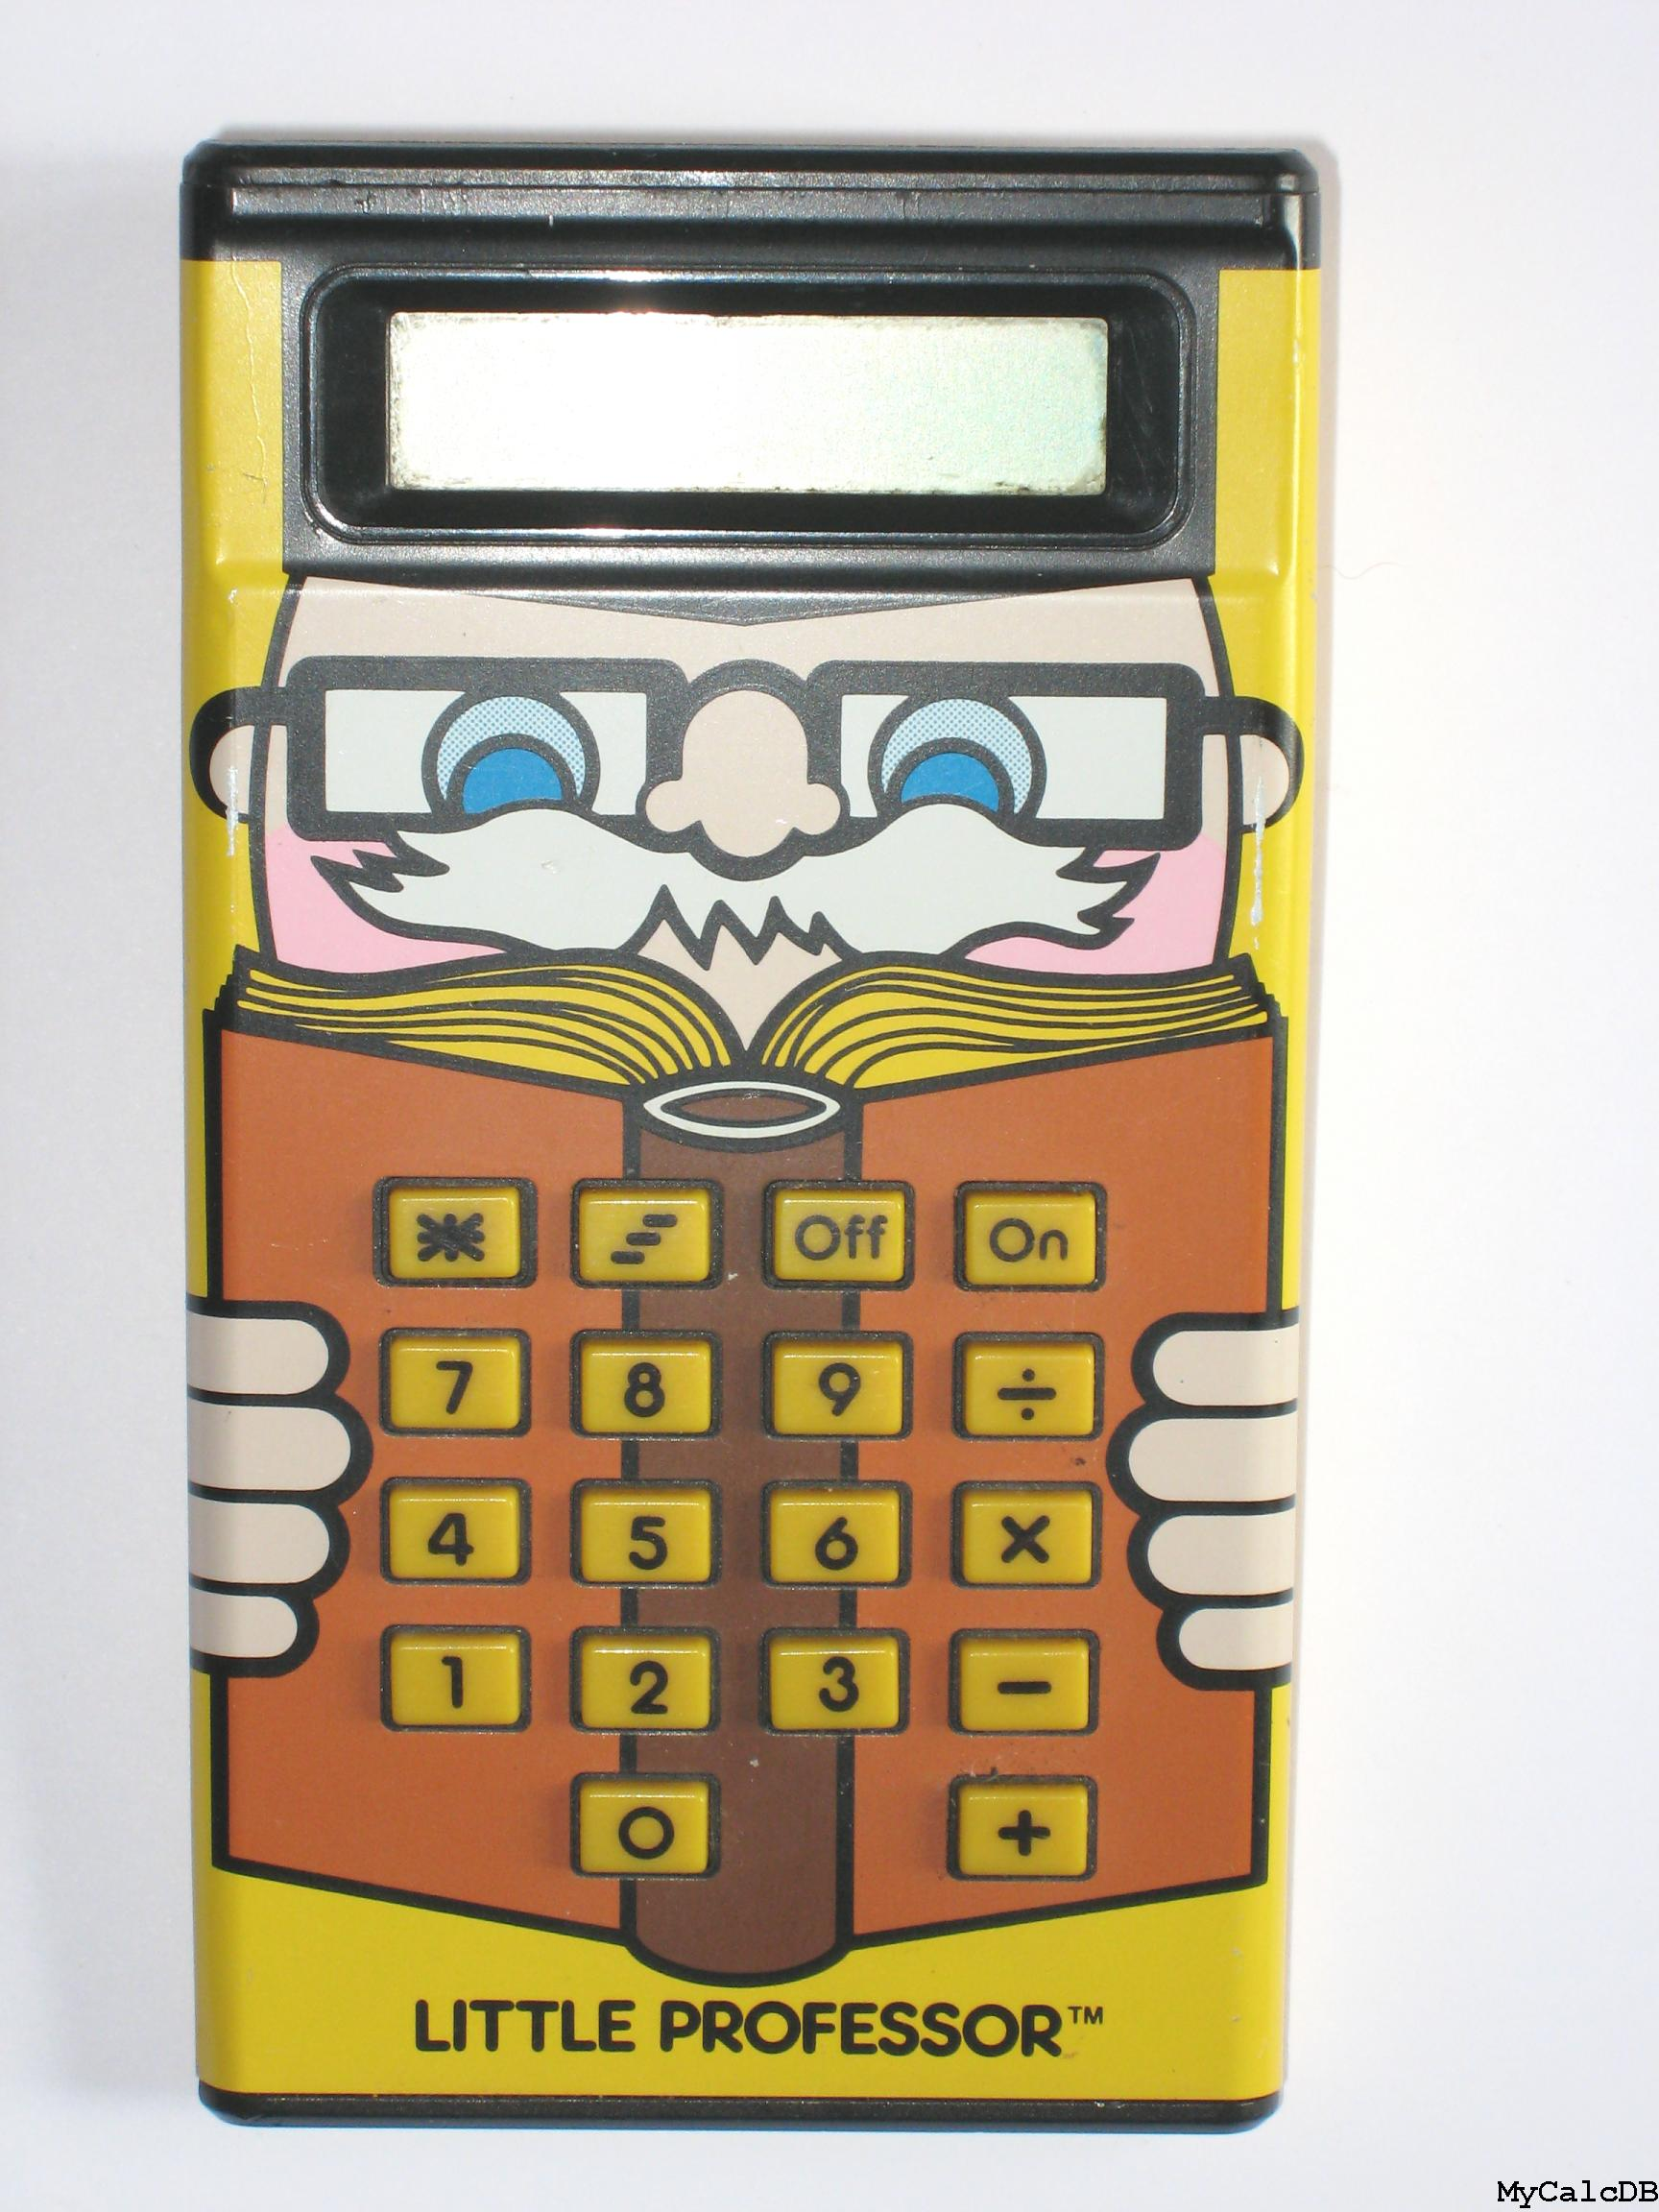 Texas Instruments LITTLE PROFESSOR